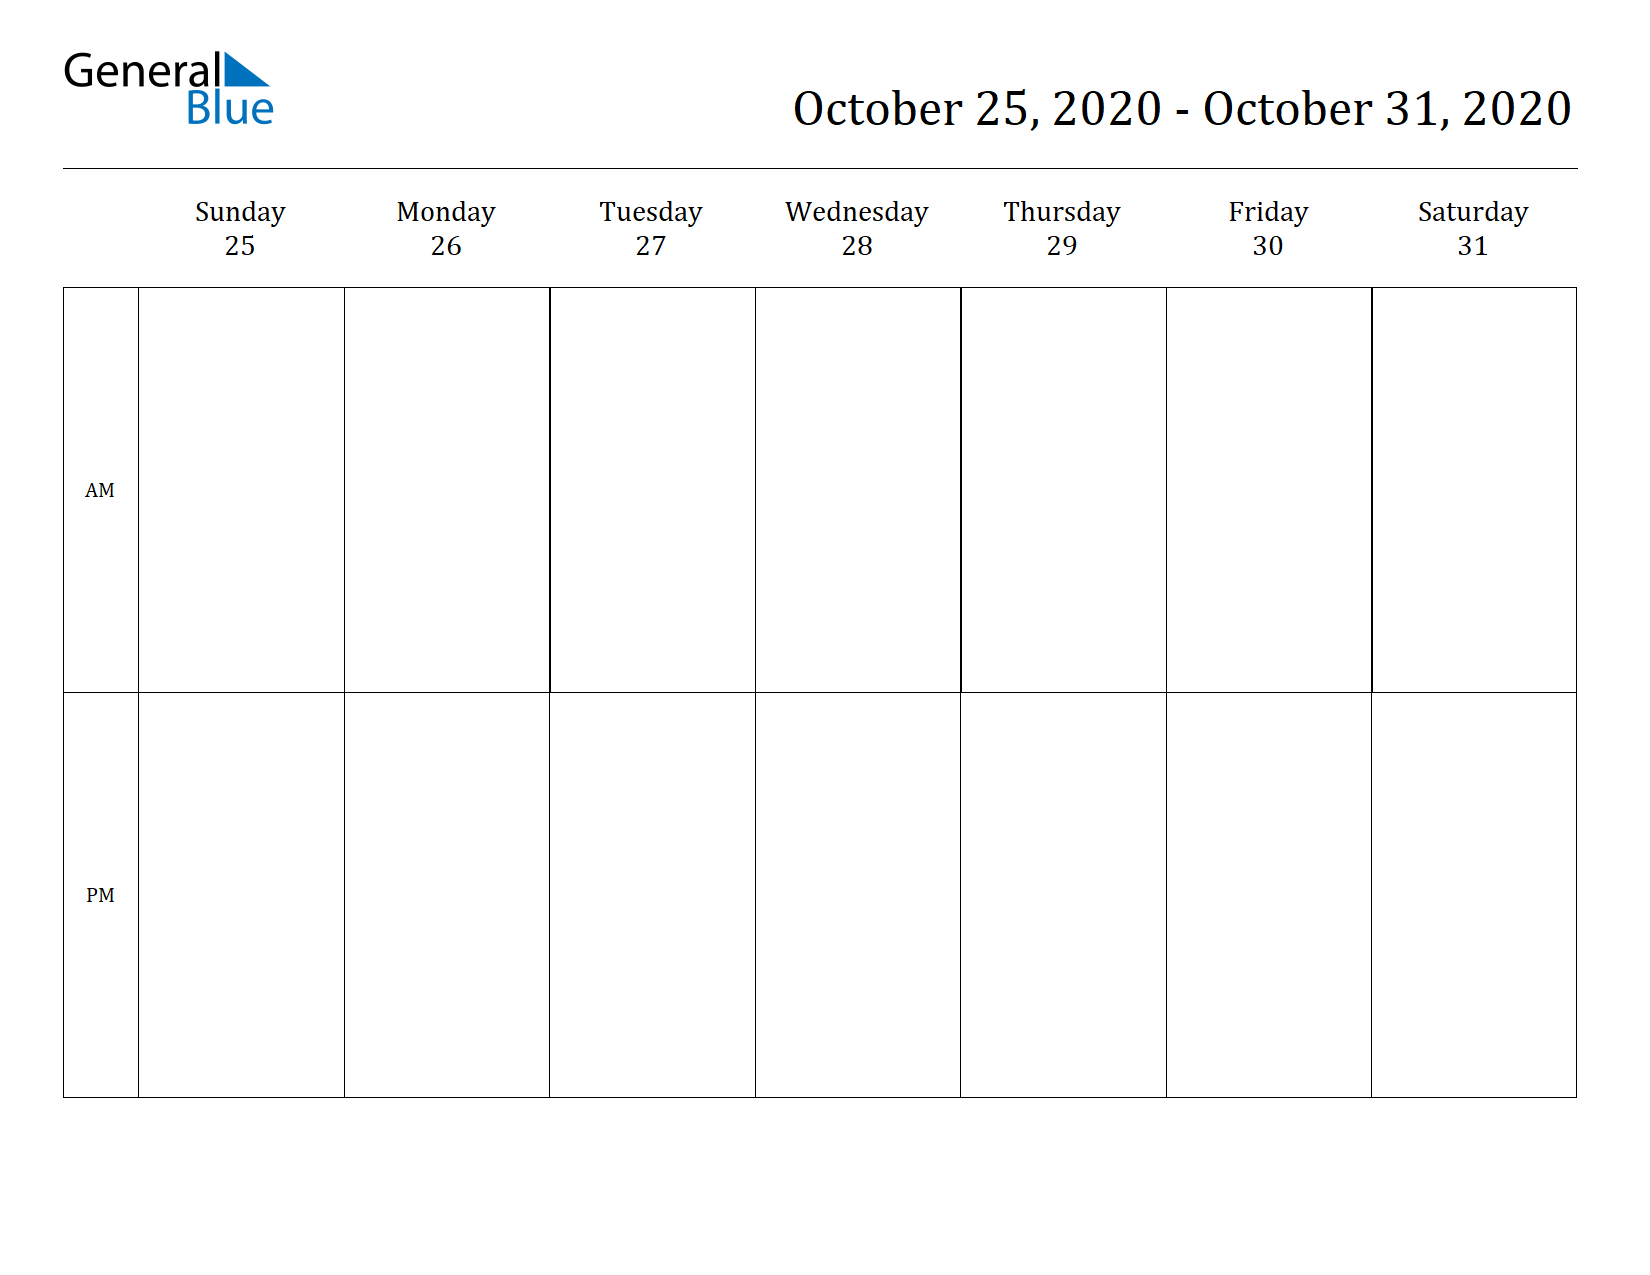 Weekly Calendar for Oct 25, 2020 to Oct 31, 2020